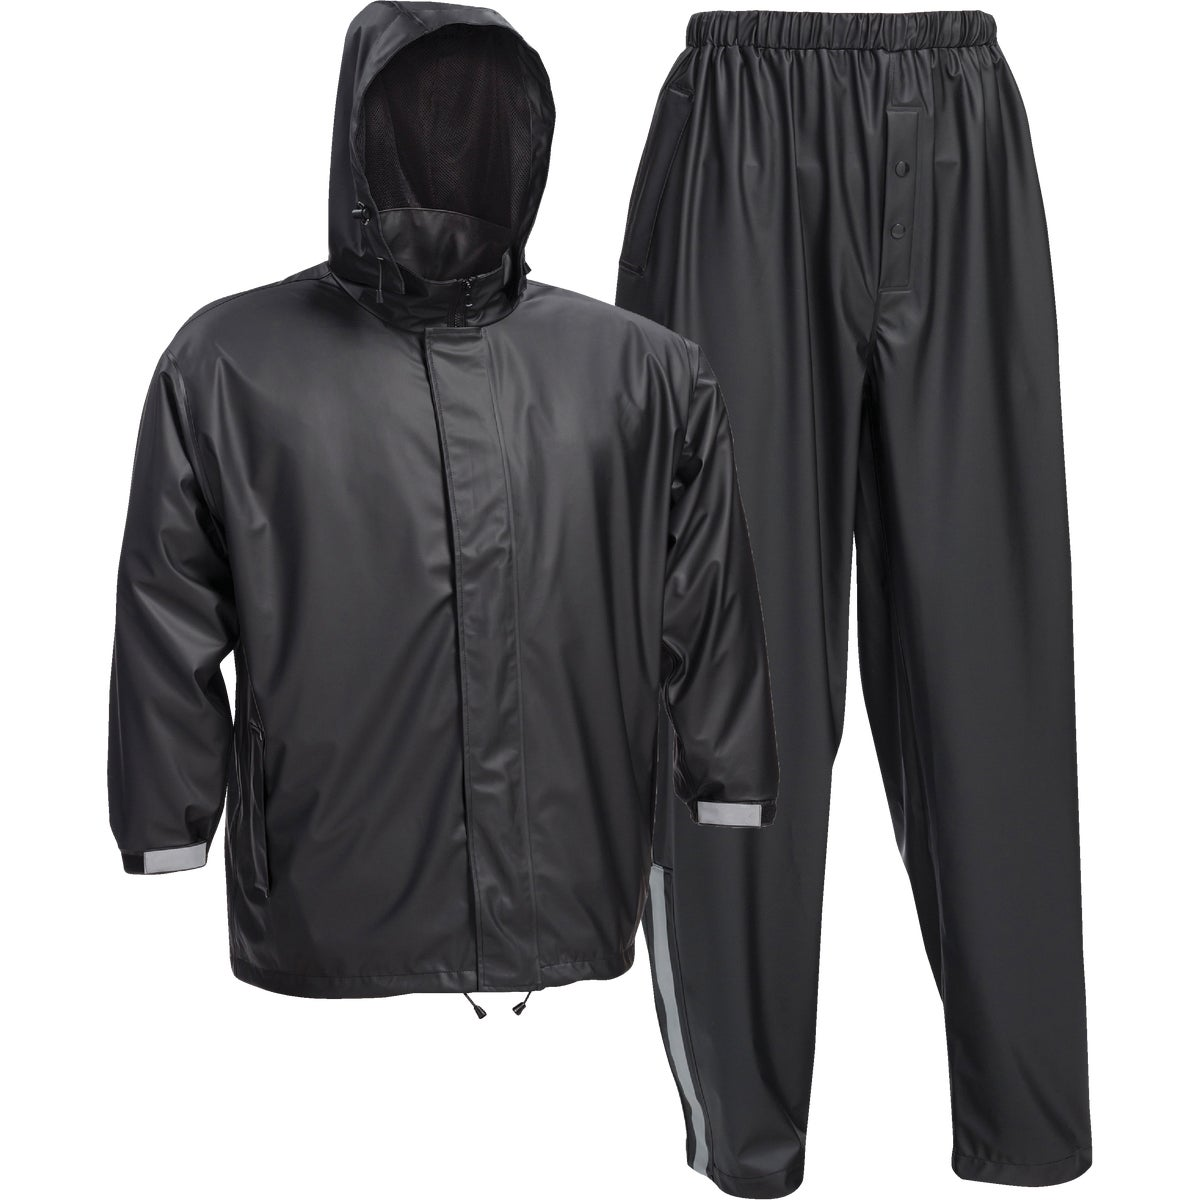 XXL BLK NYLON RAINSUIT - R1032X by Custom Leathercraft